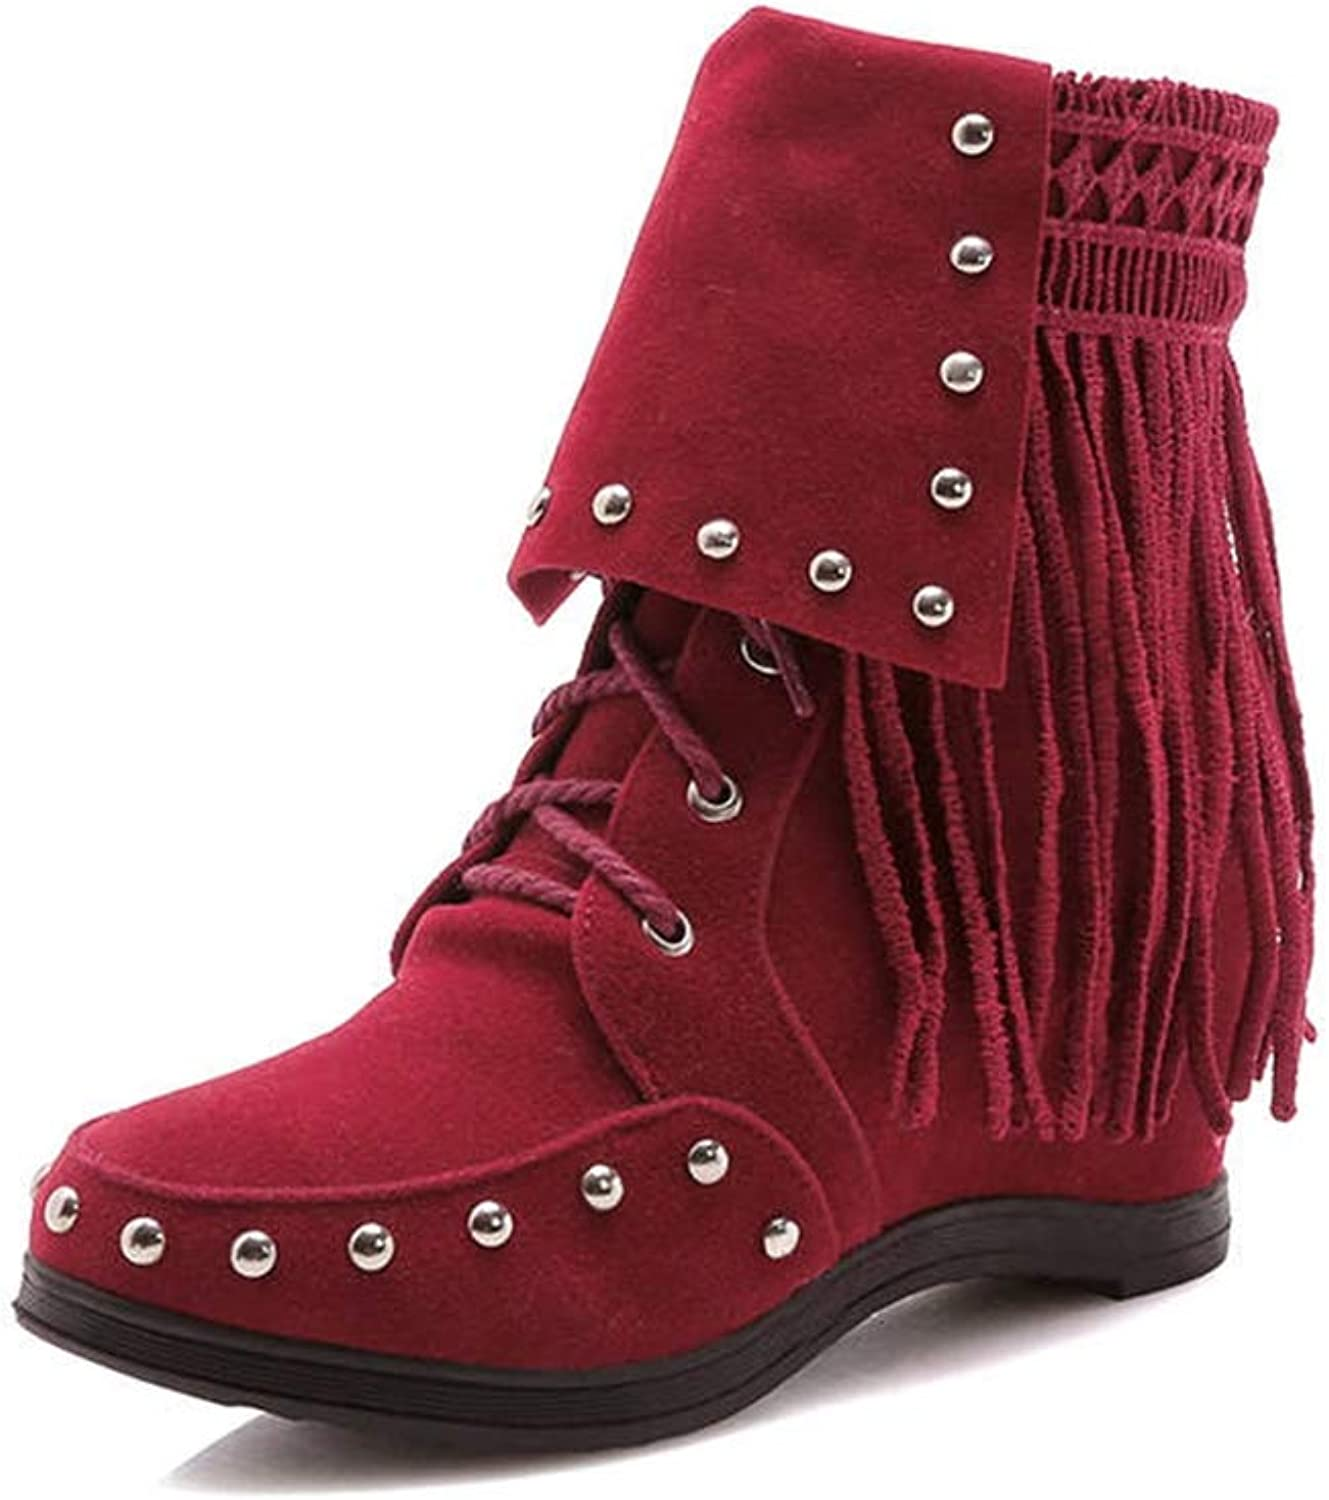 GIY Women's Lace Up Ankle Boots Winter Comfortable Rivet Tassel Suede Footwear Flat Heel Short Boots